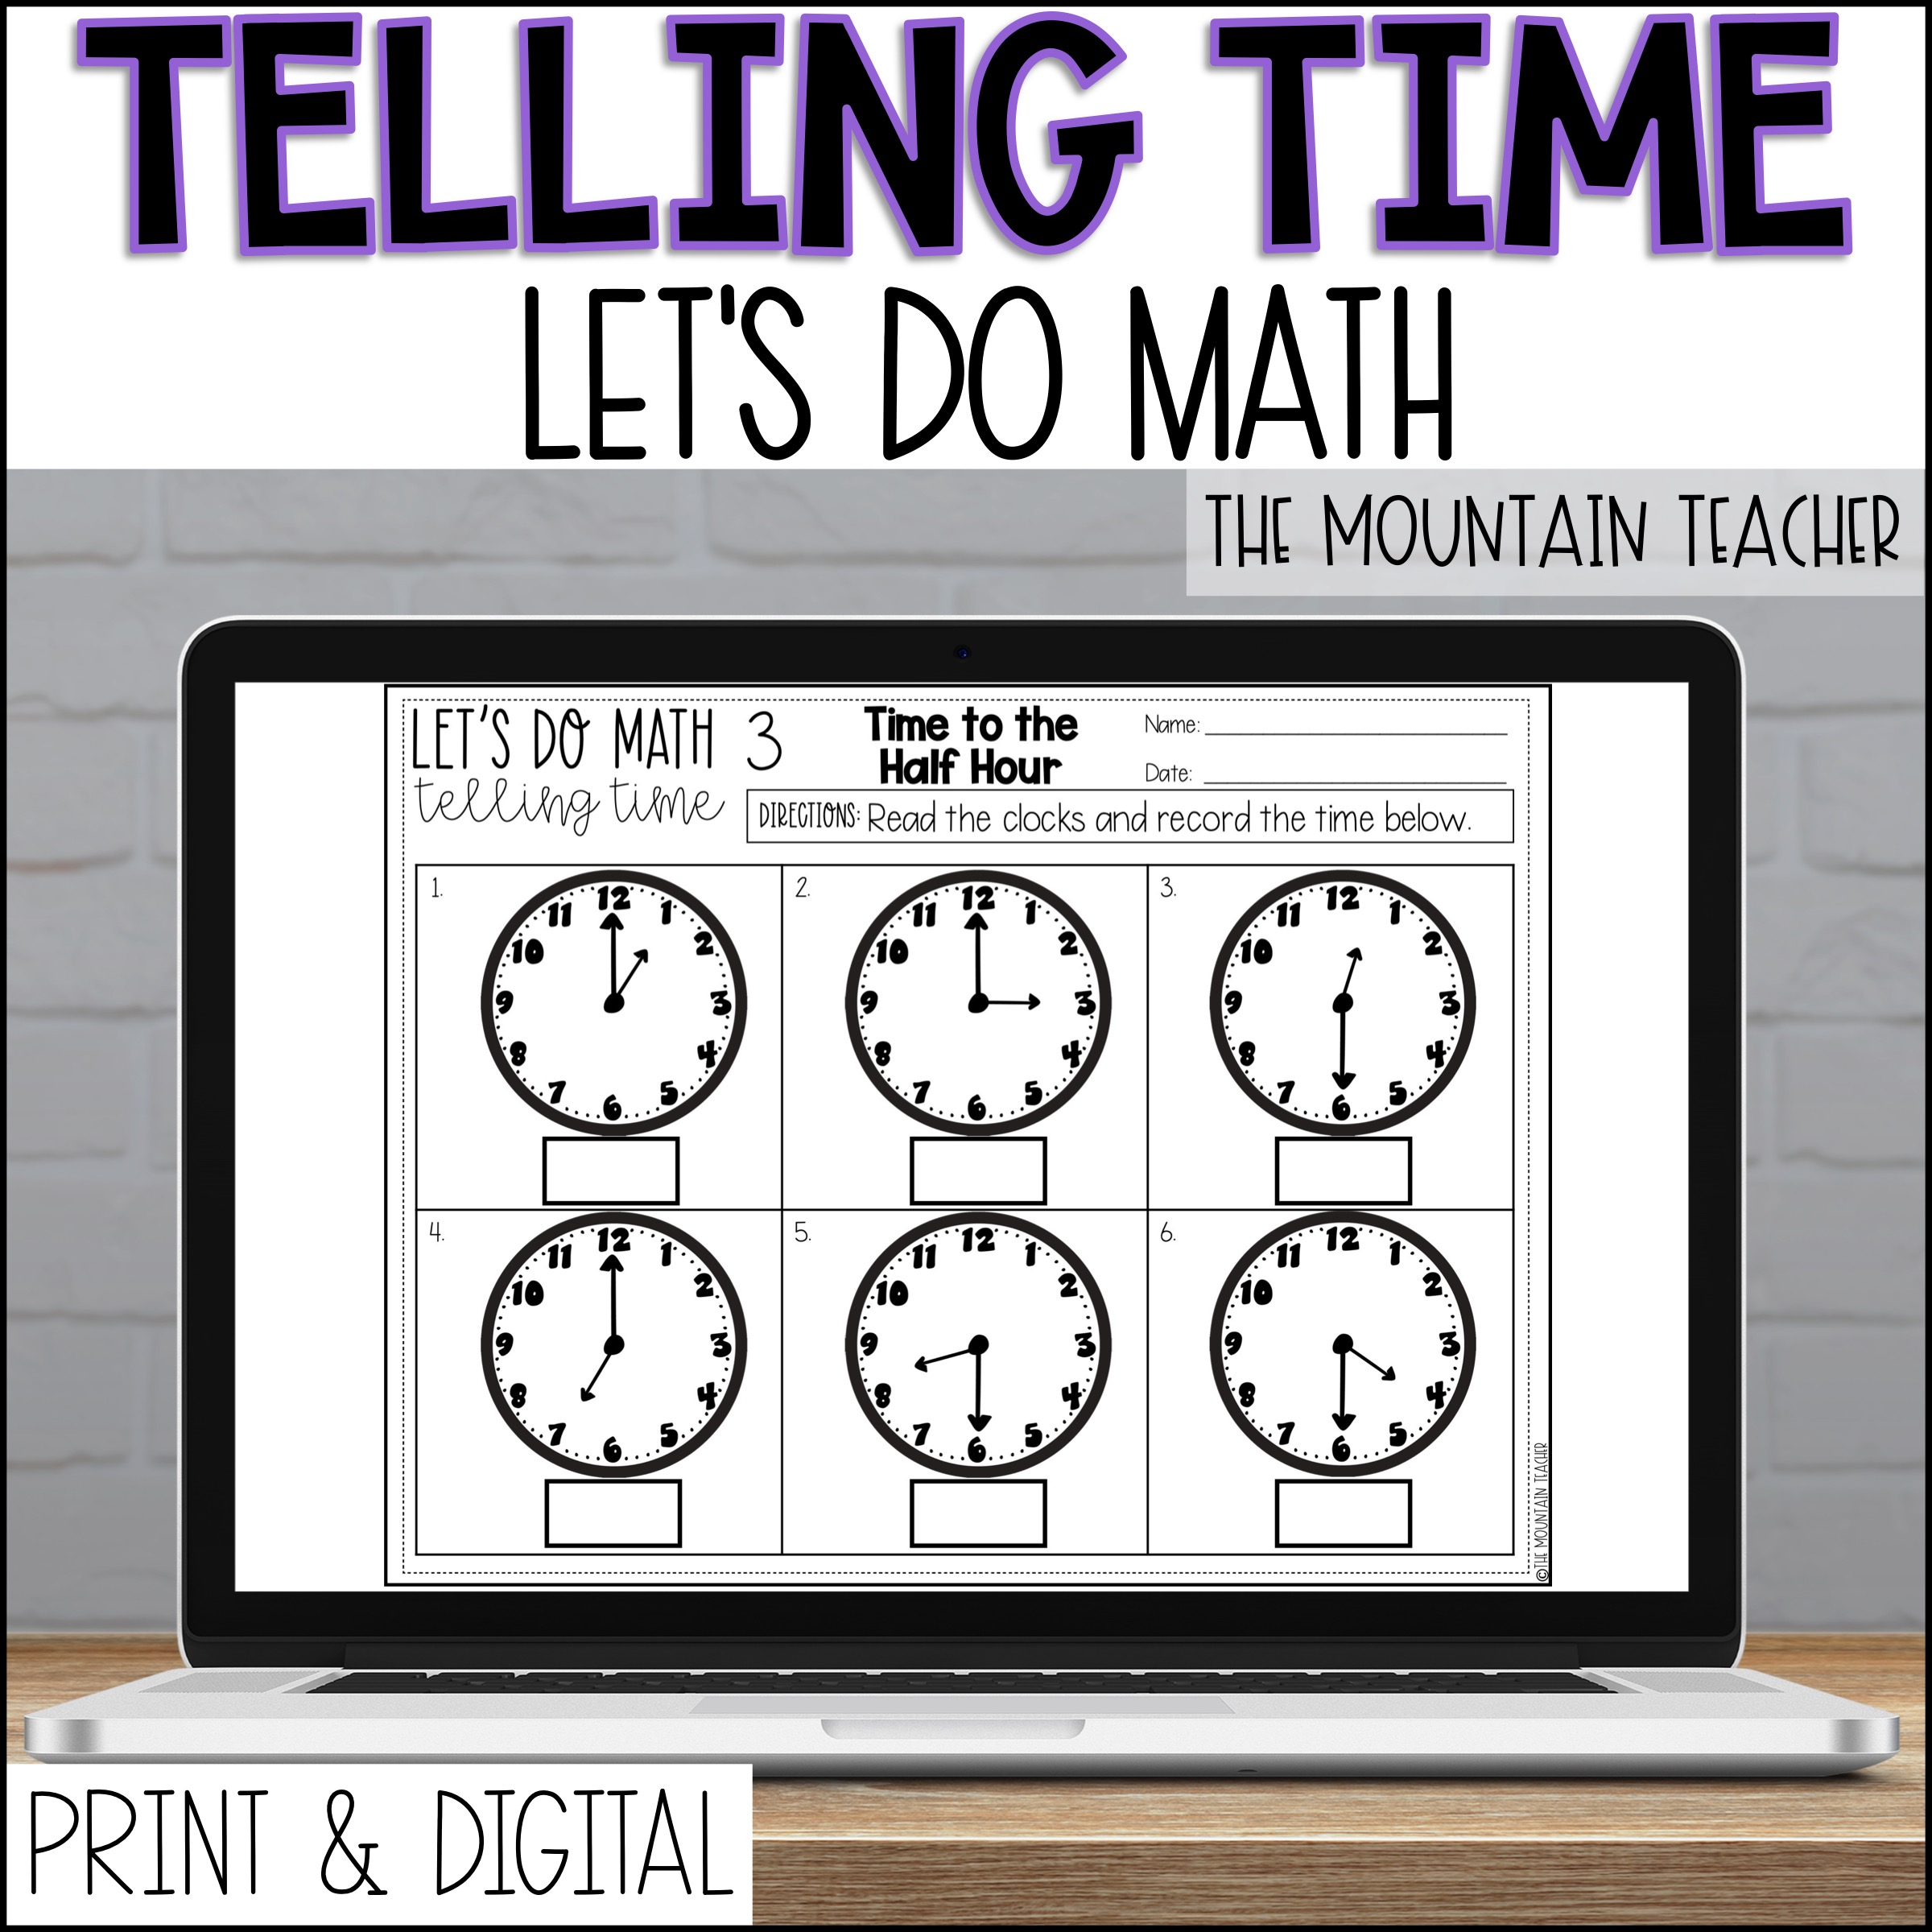 DIGITAL Telling Time to 5 Minutes Unit for 2nd Grade By The Mountain Teacher